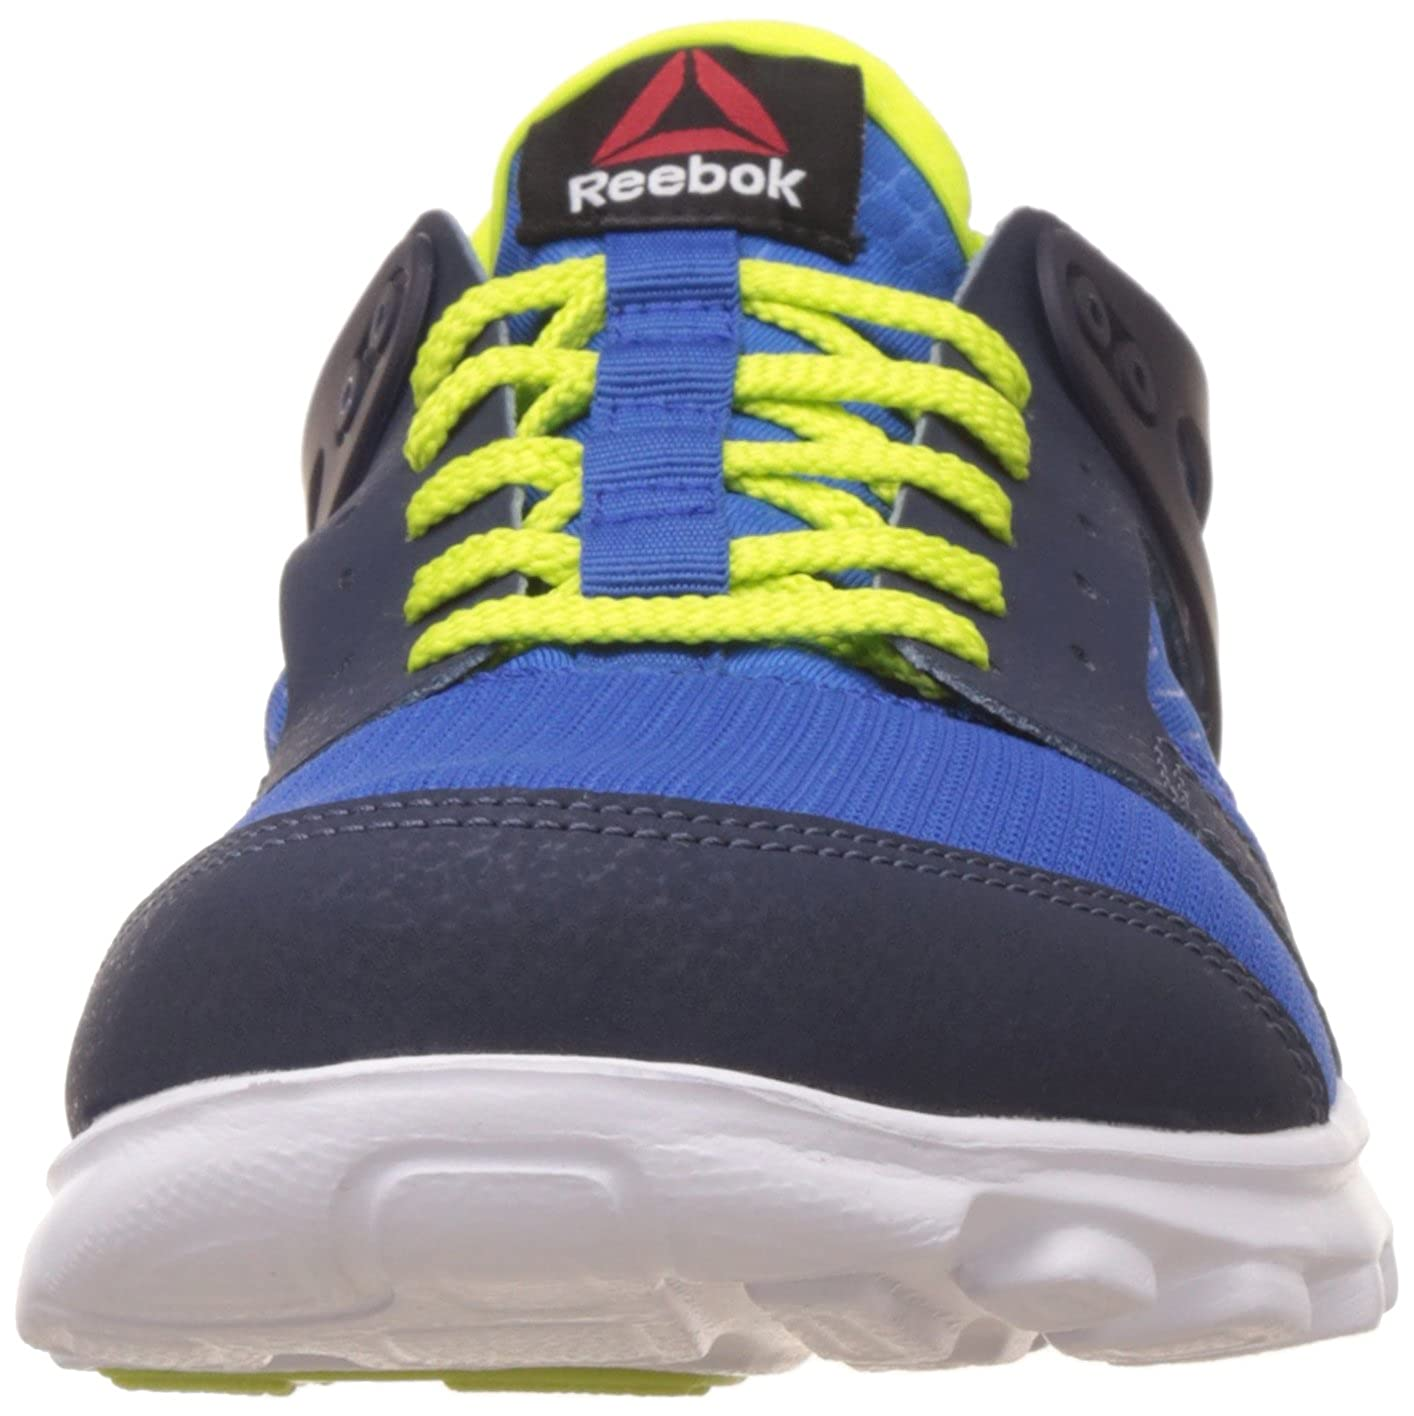 5c5c6e8bccb428 Reebok Men s Amaze Run Running Shoes  Buy Online at Low Prices in India -  Amazon.in